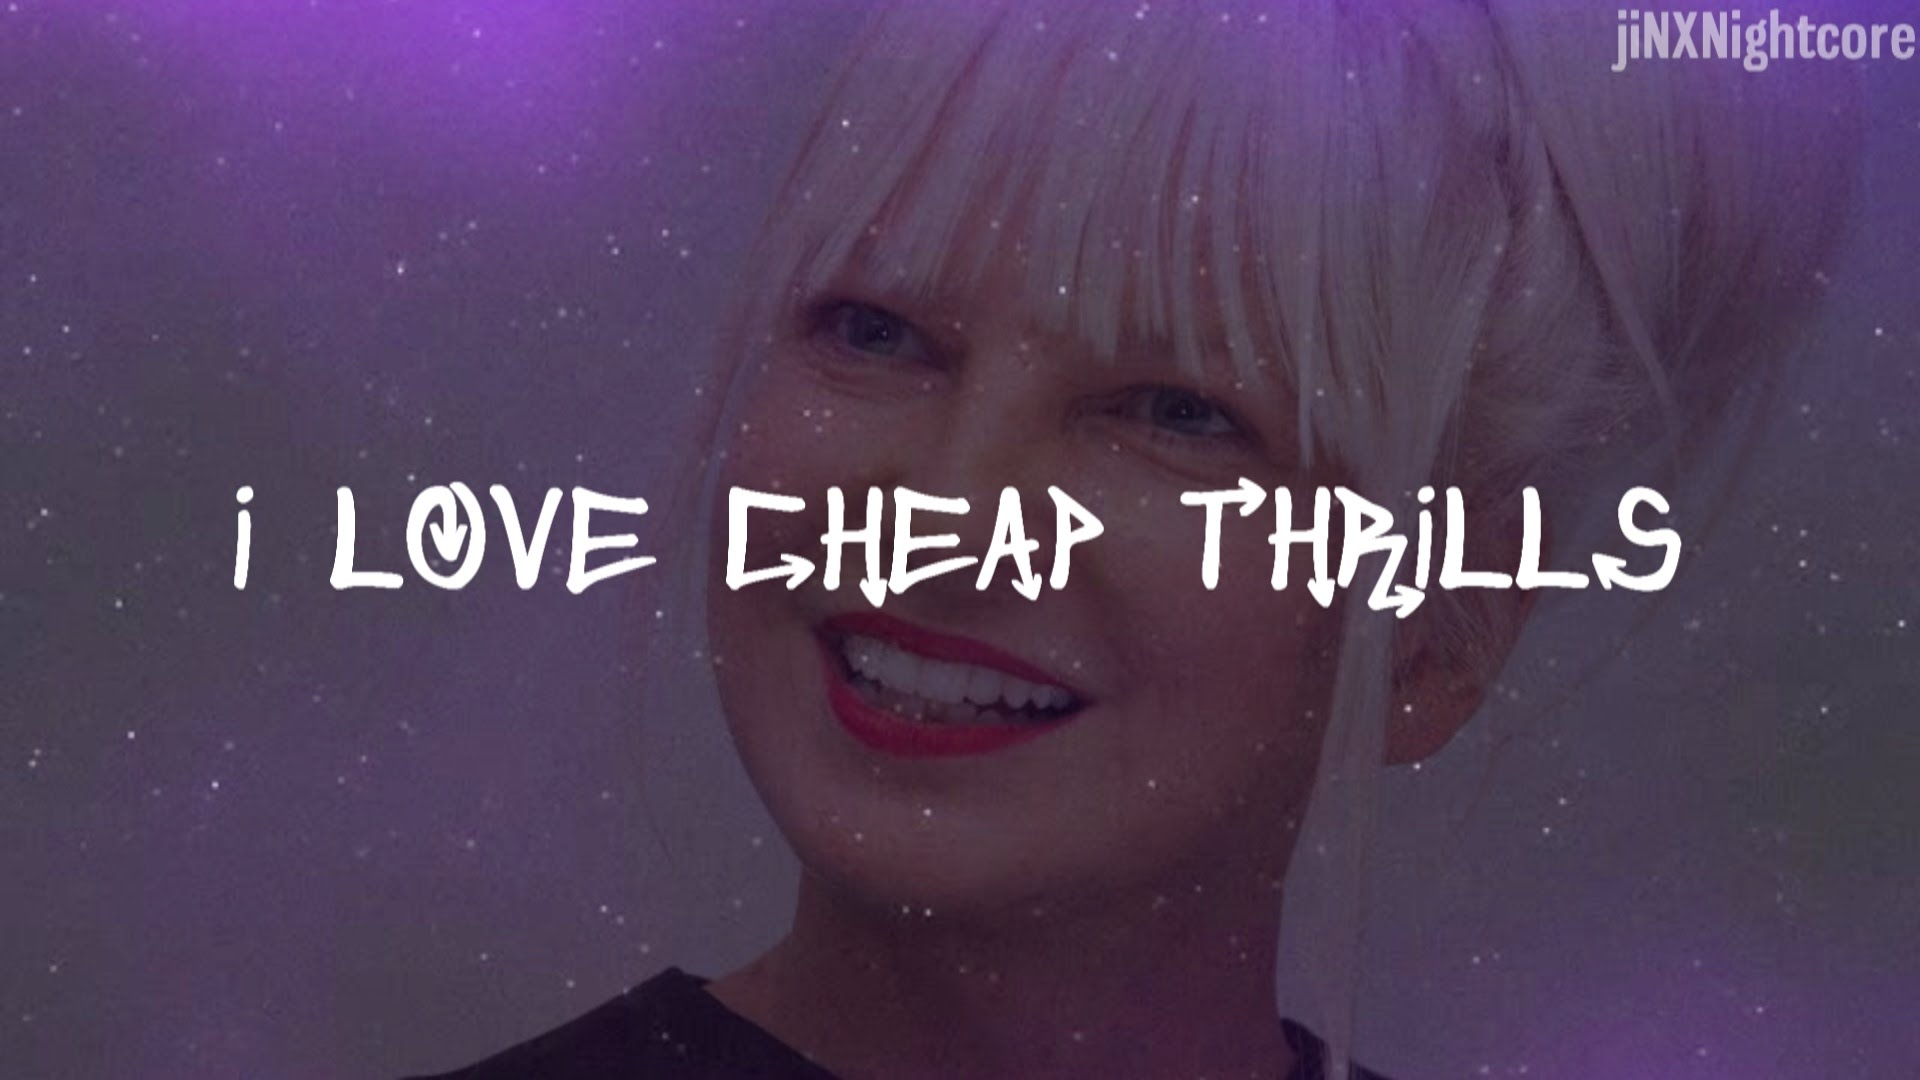 sia - cheap thrills download mp3